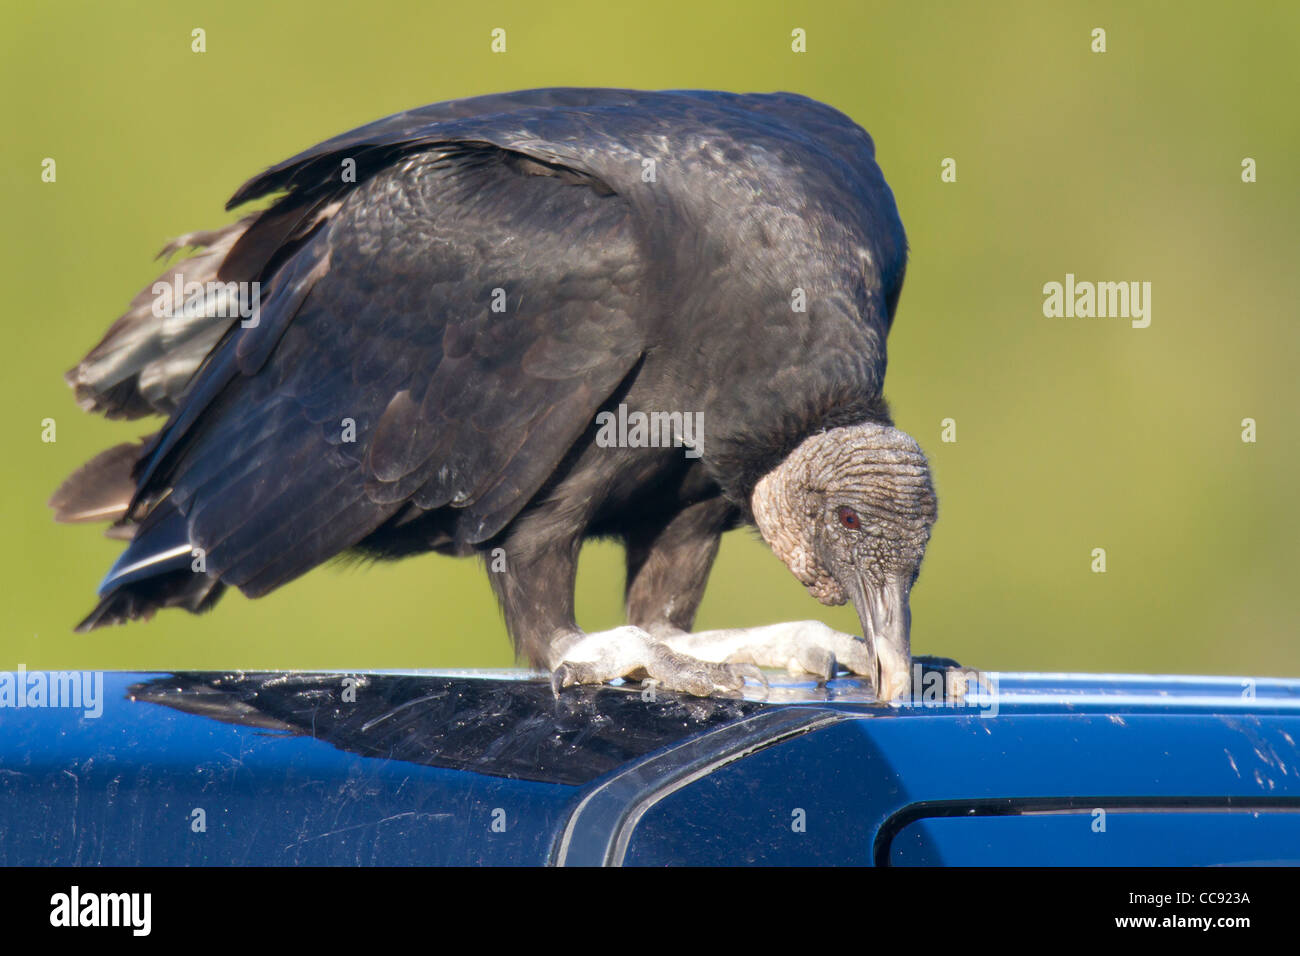 Black Vulture (Coragyps atratus) damaging the rubber seal on a car roof - Stock Image